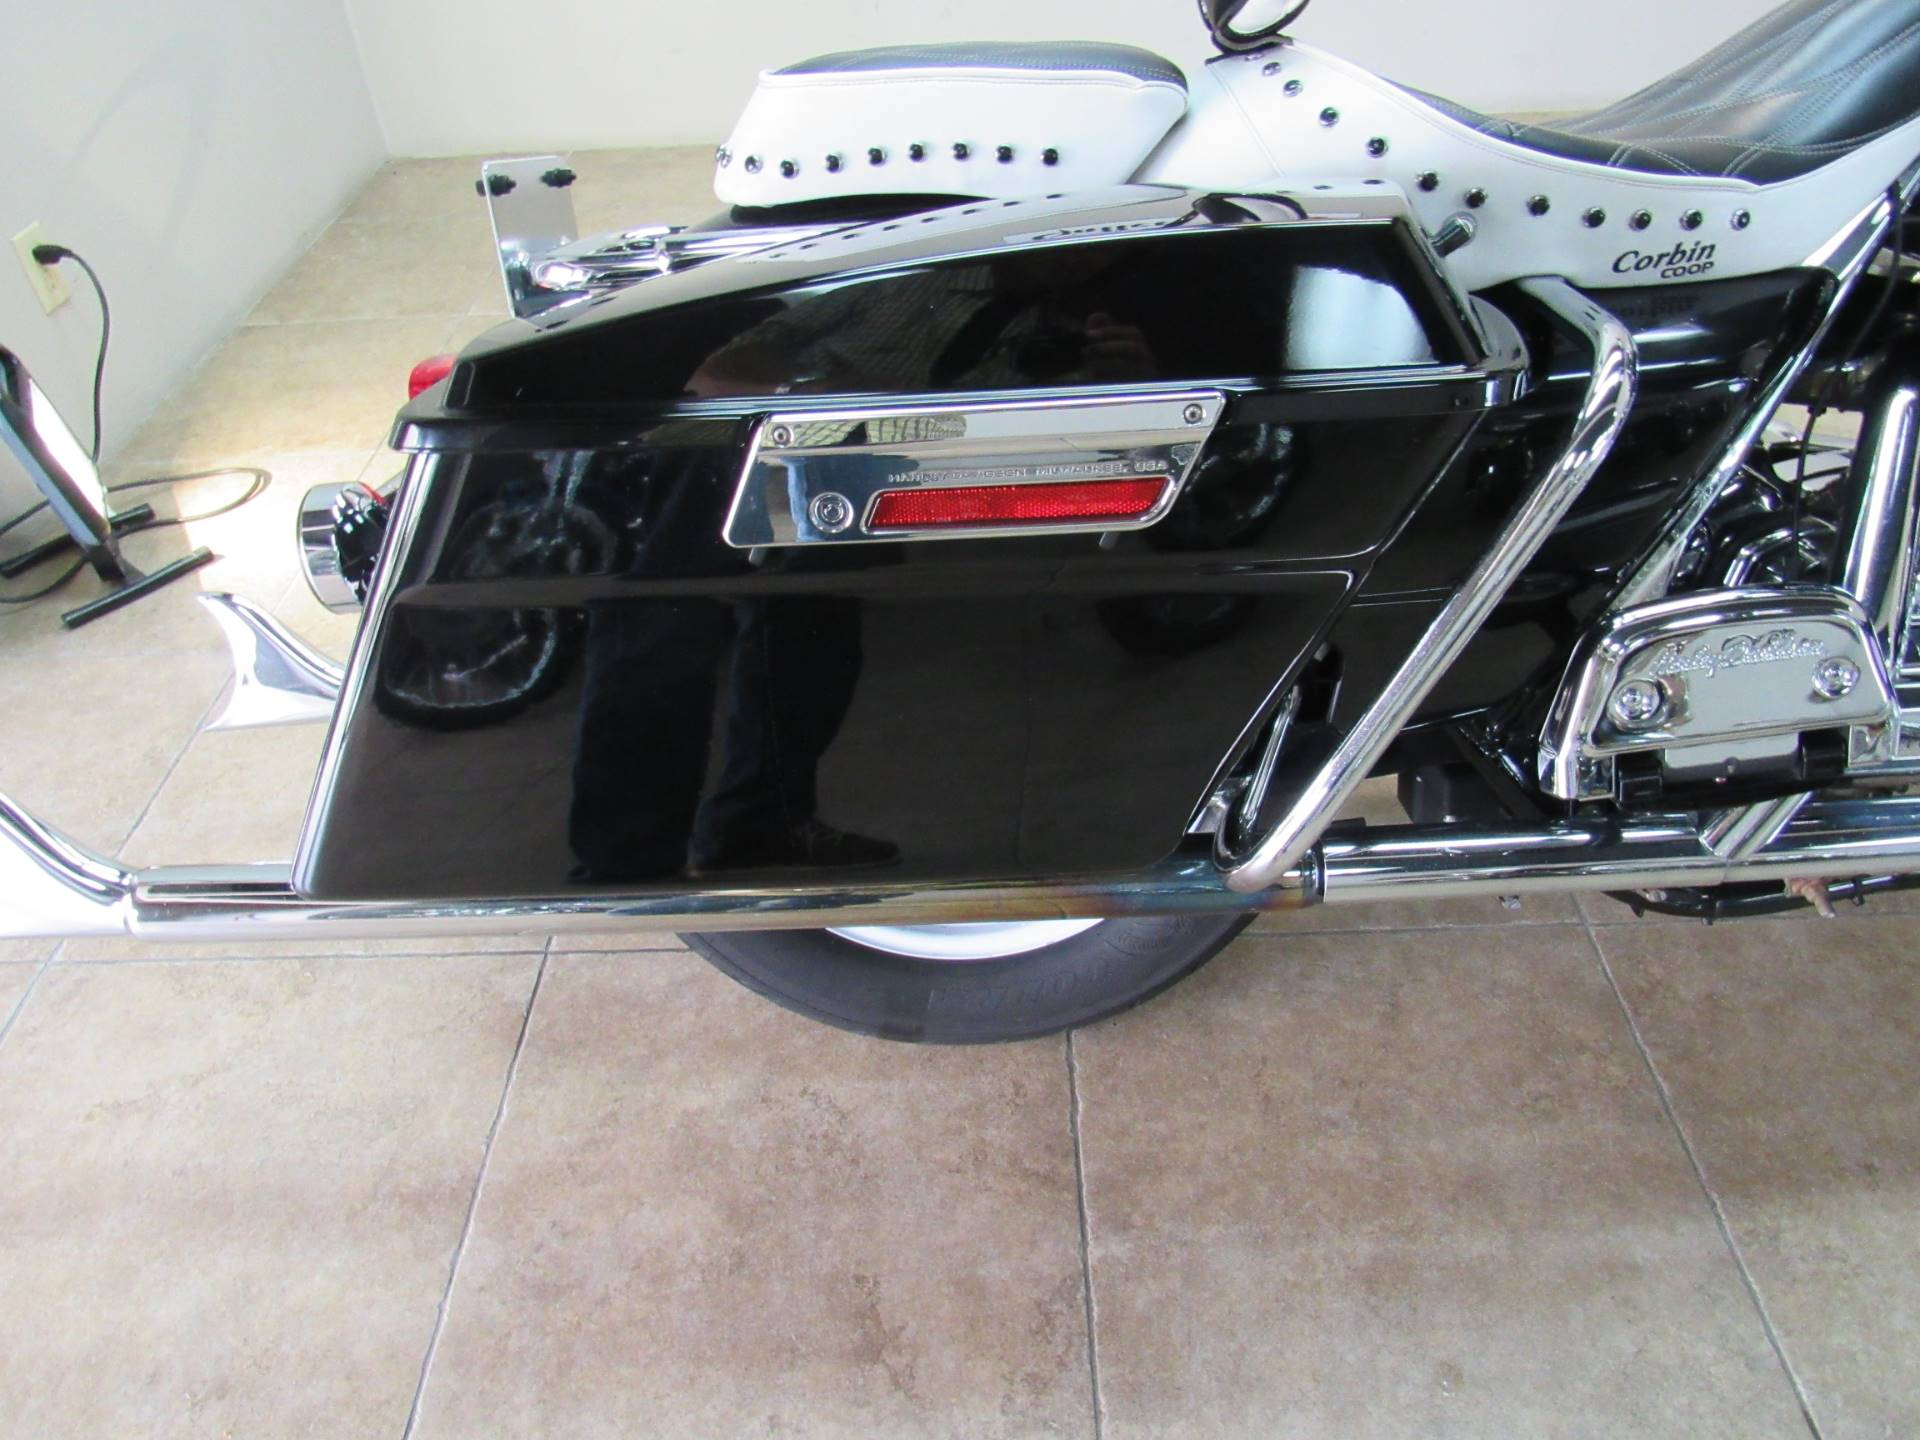 2008 Harley-Davidson Road King® in Temecula, California - Photo 30